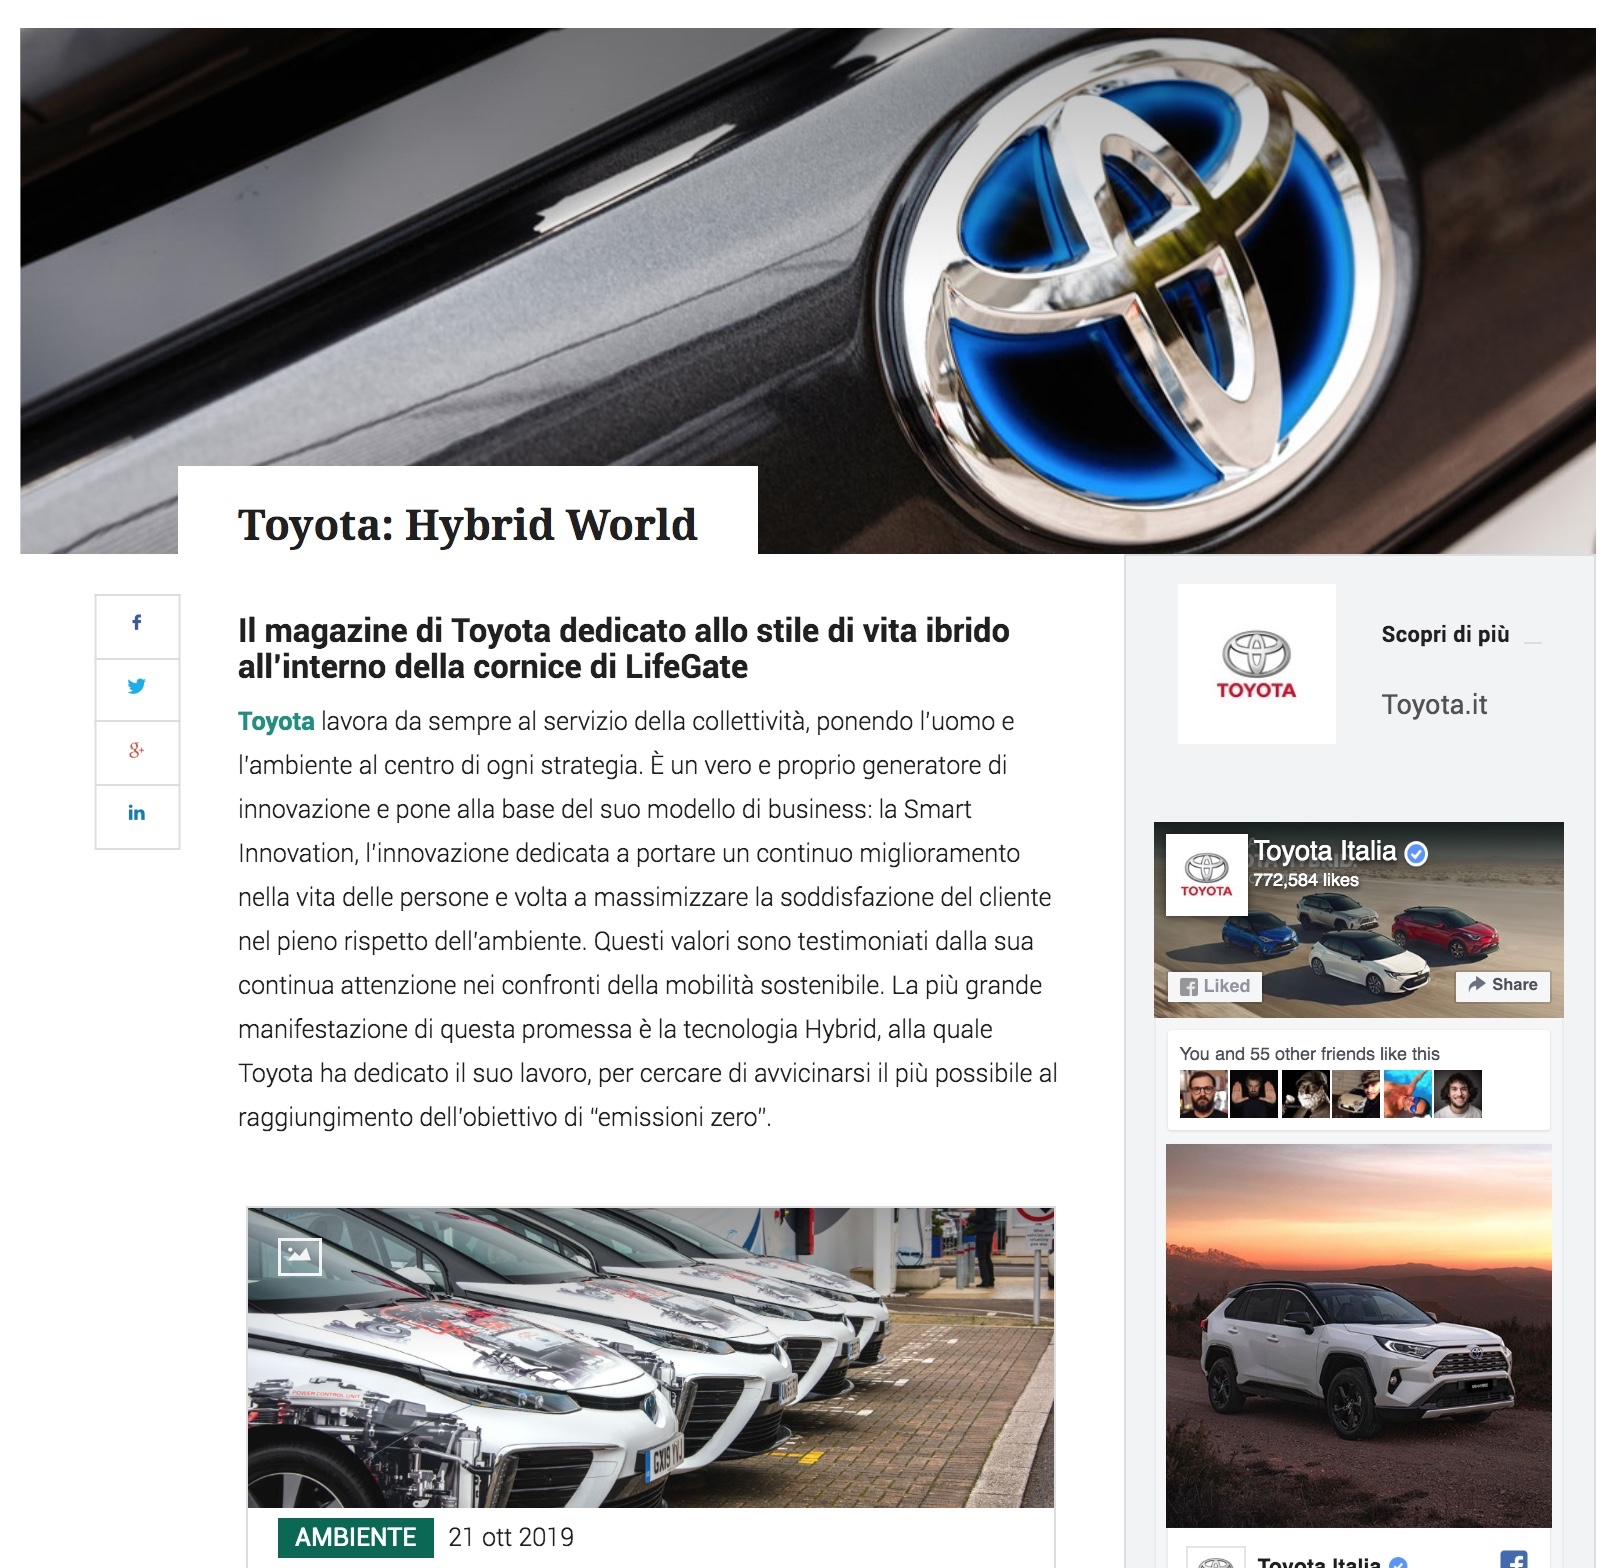 Toyota Hybrid World on LifeGate